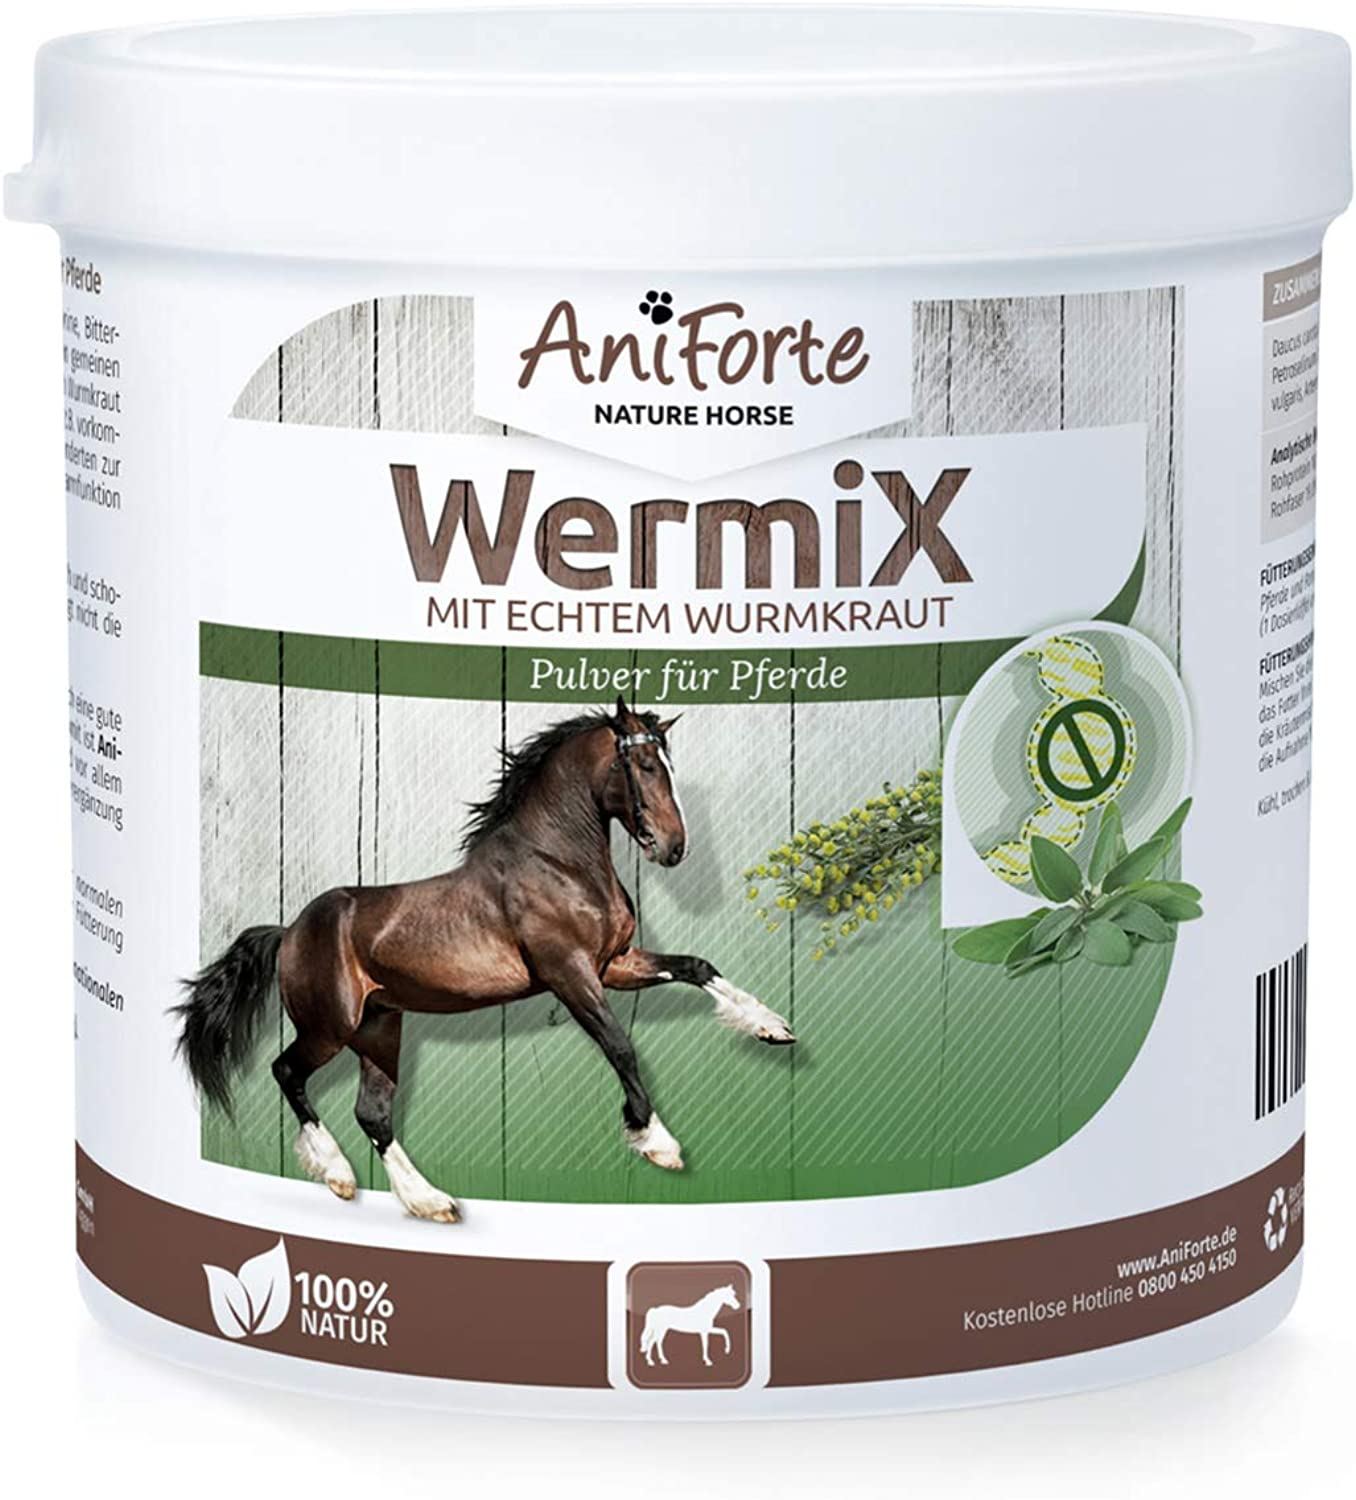 AniForte Gut Help  Horse Powder (250g)   100% Pure & Natural   Well Tolerated   Treatment & Prevention   Natural Solution for Horses